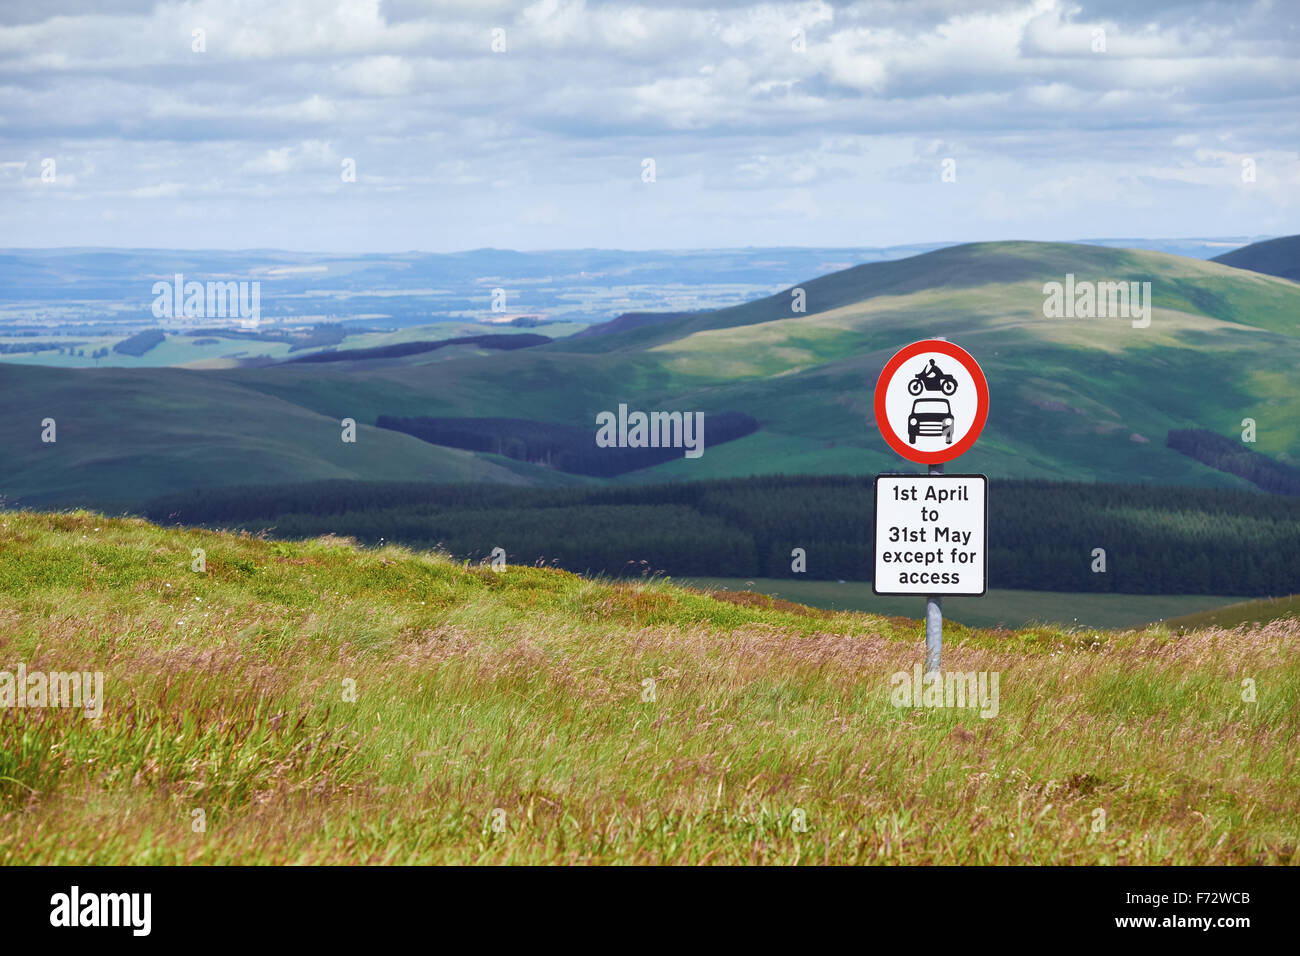 No motor vehicles sign in the Northumberland Countryside, England,UK. Stock Photo